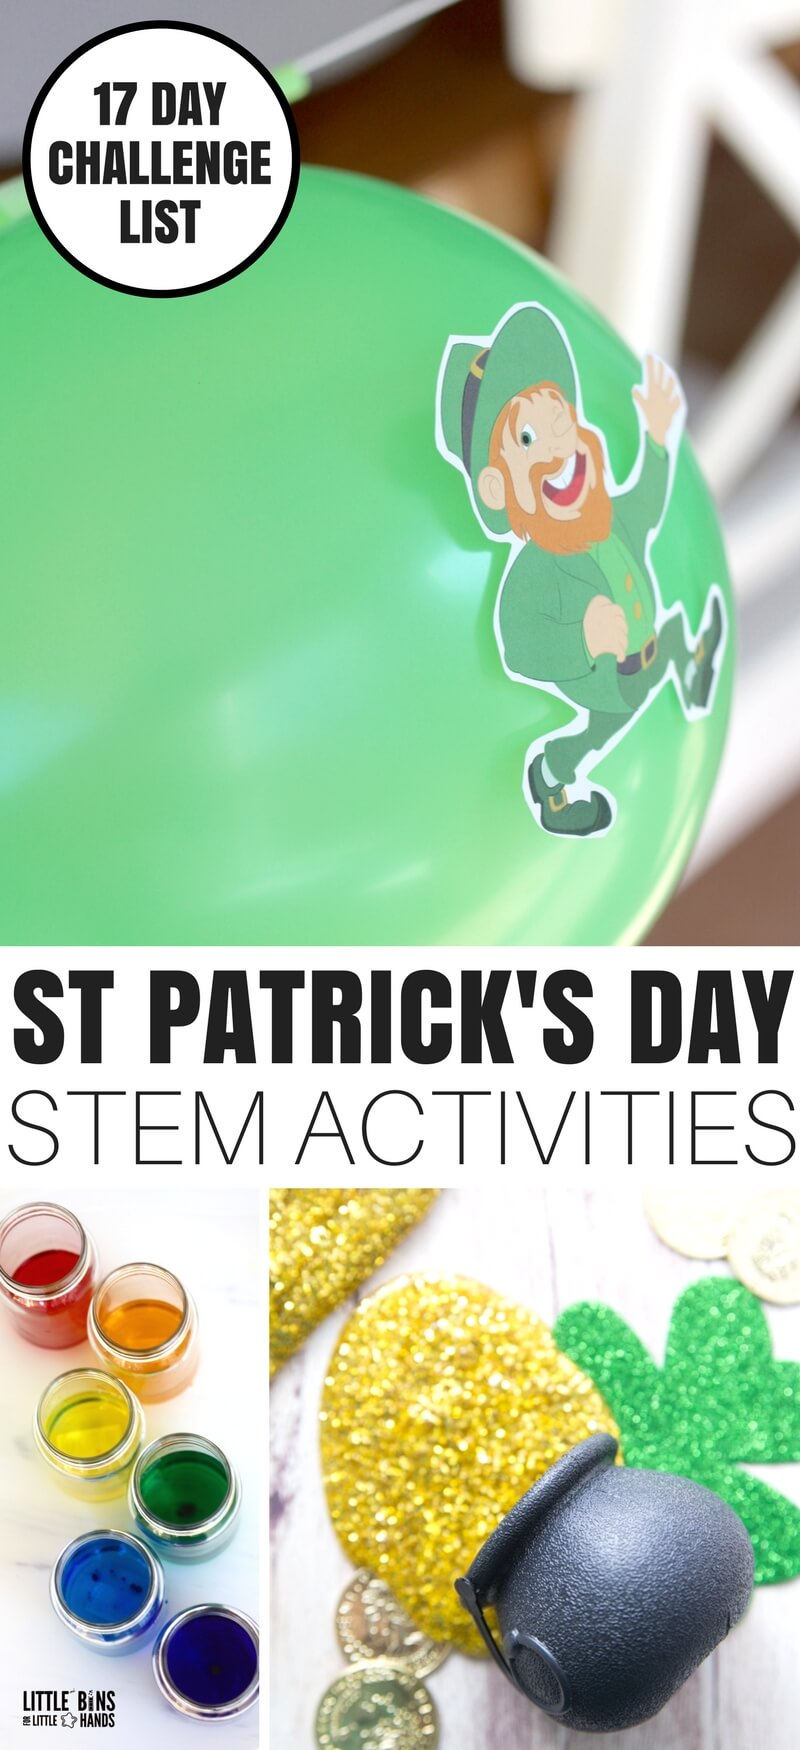 st patricks day stem activities for kids